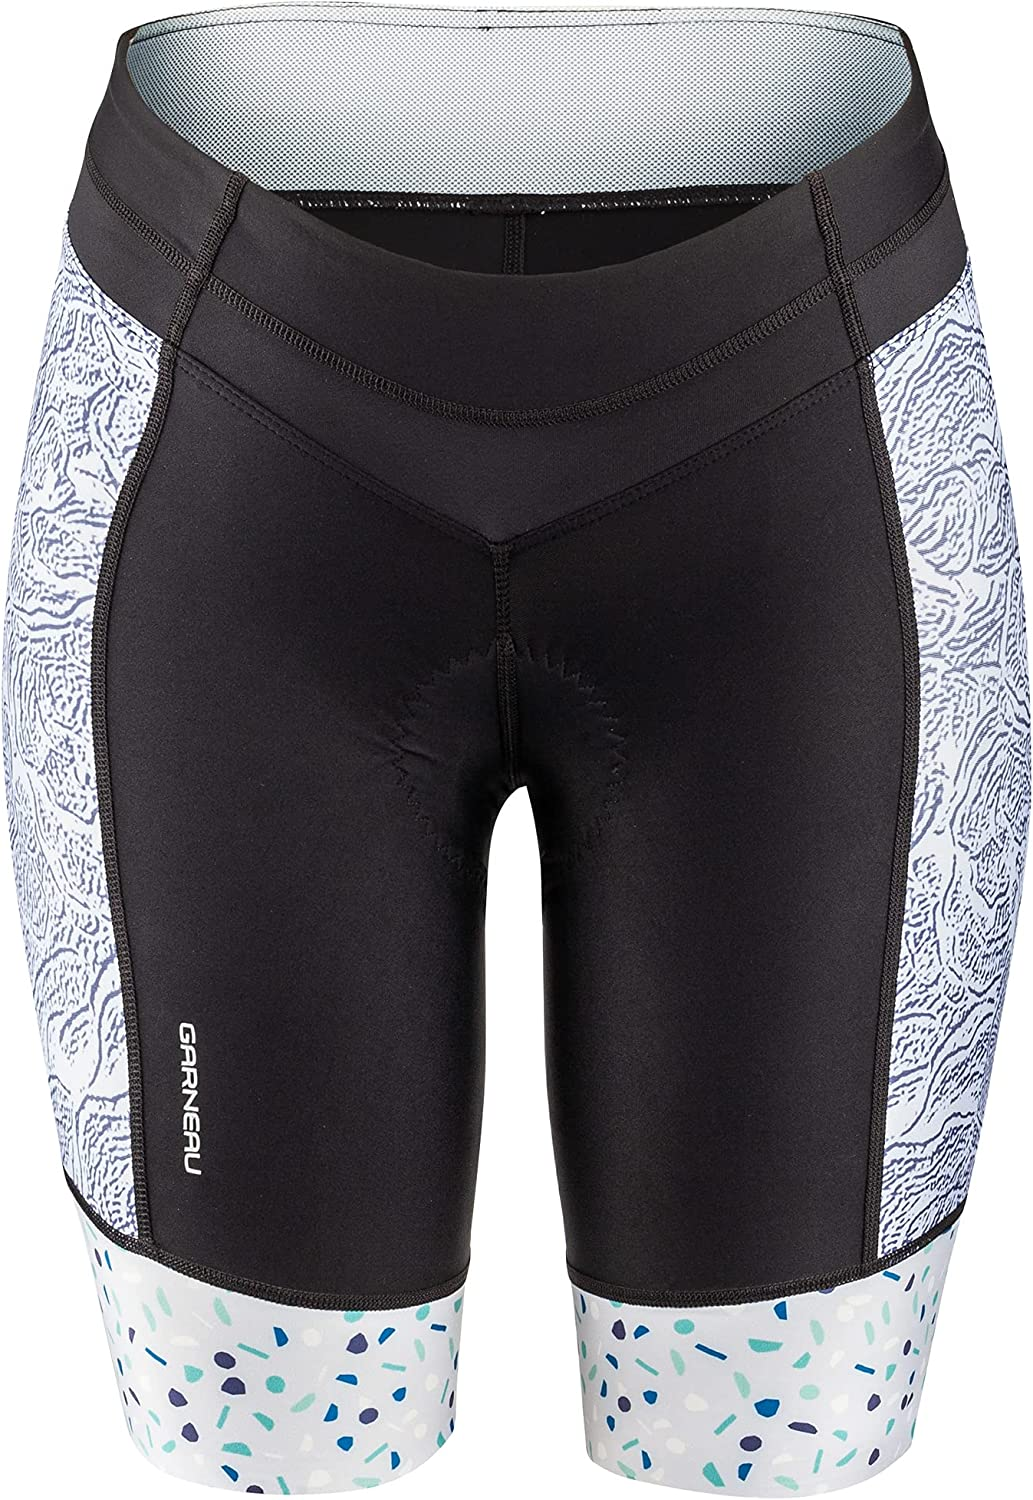 Louis Manufacturer regenerated product Garneau womens Shorts 2021 spring and summer new Cycling